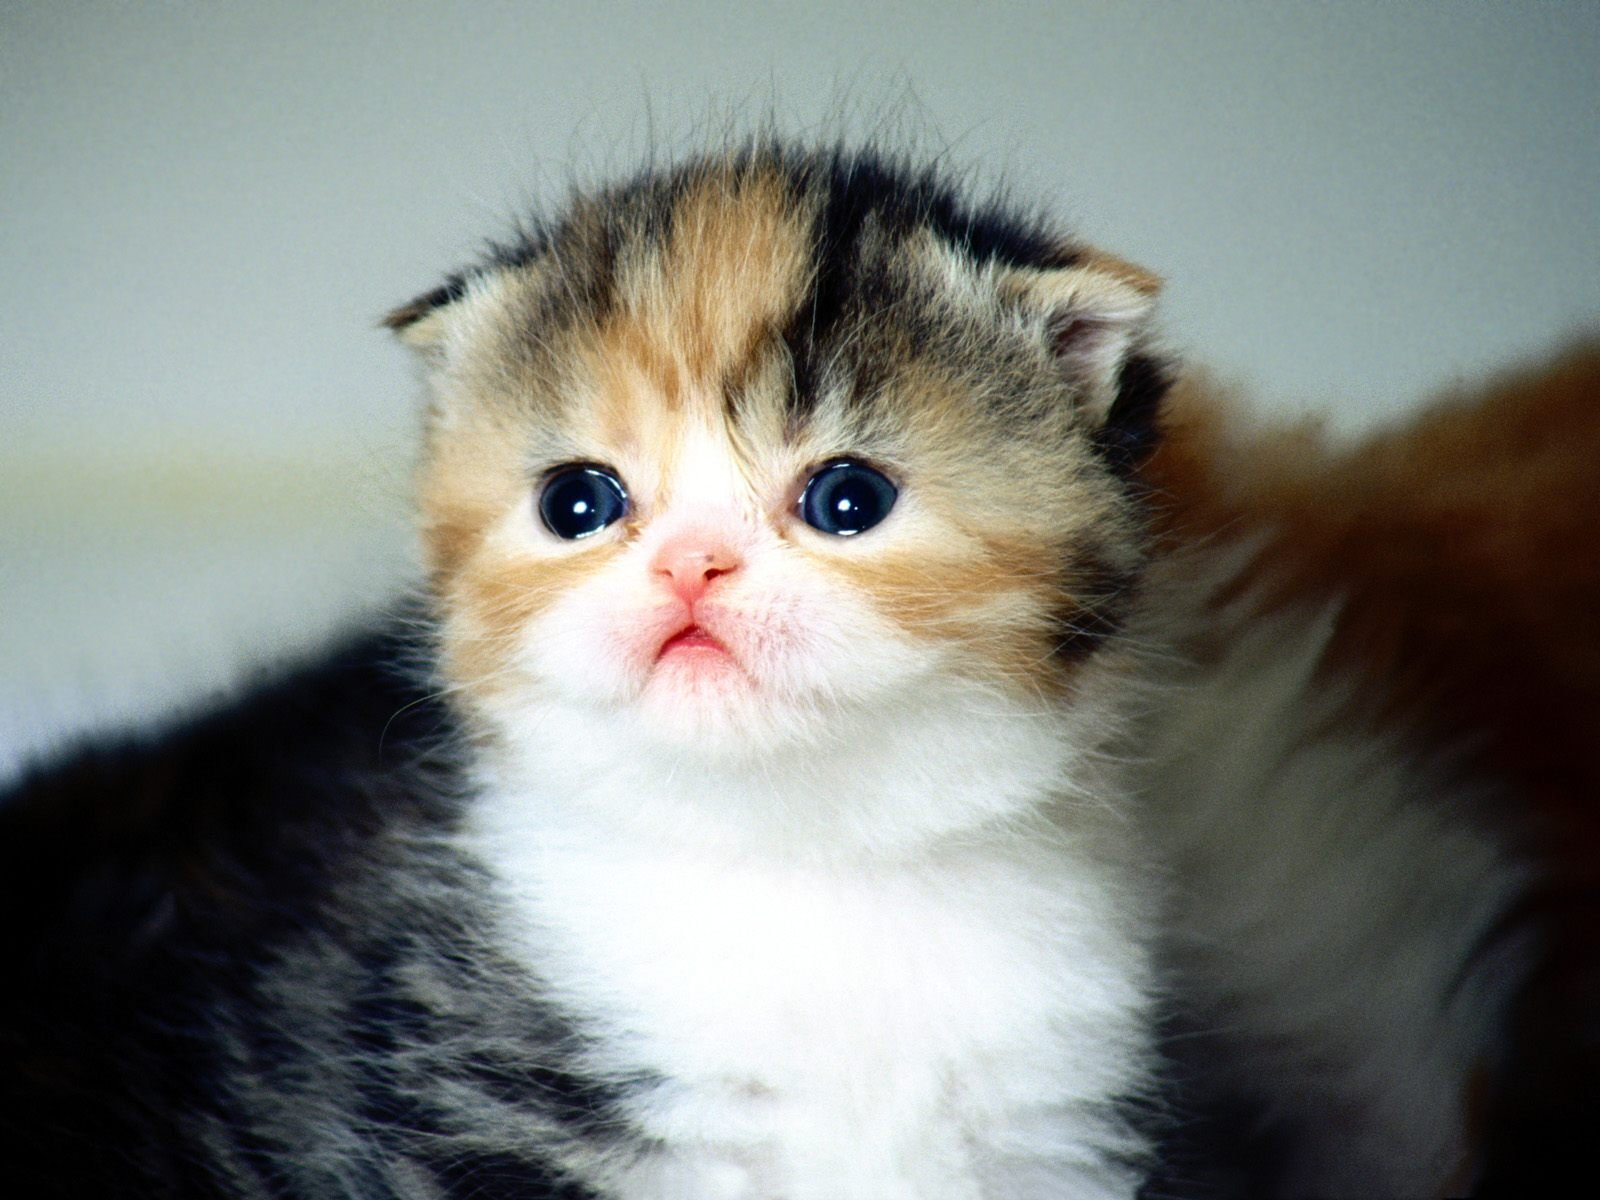 20 Scottish Fold Facts You Didn't Know